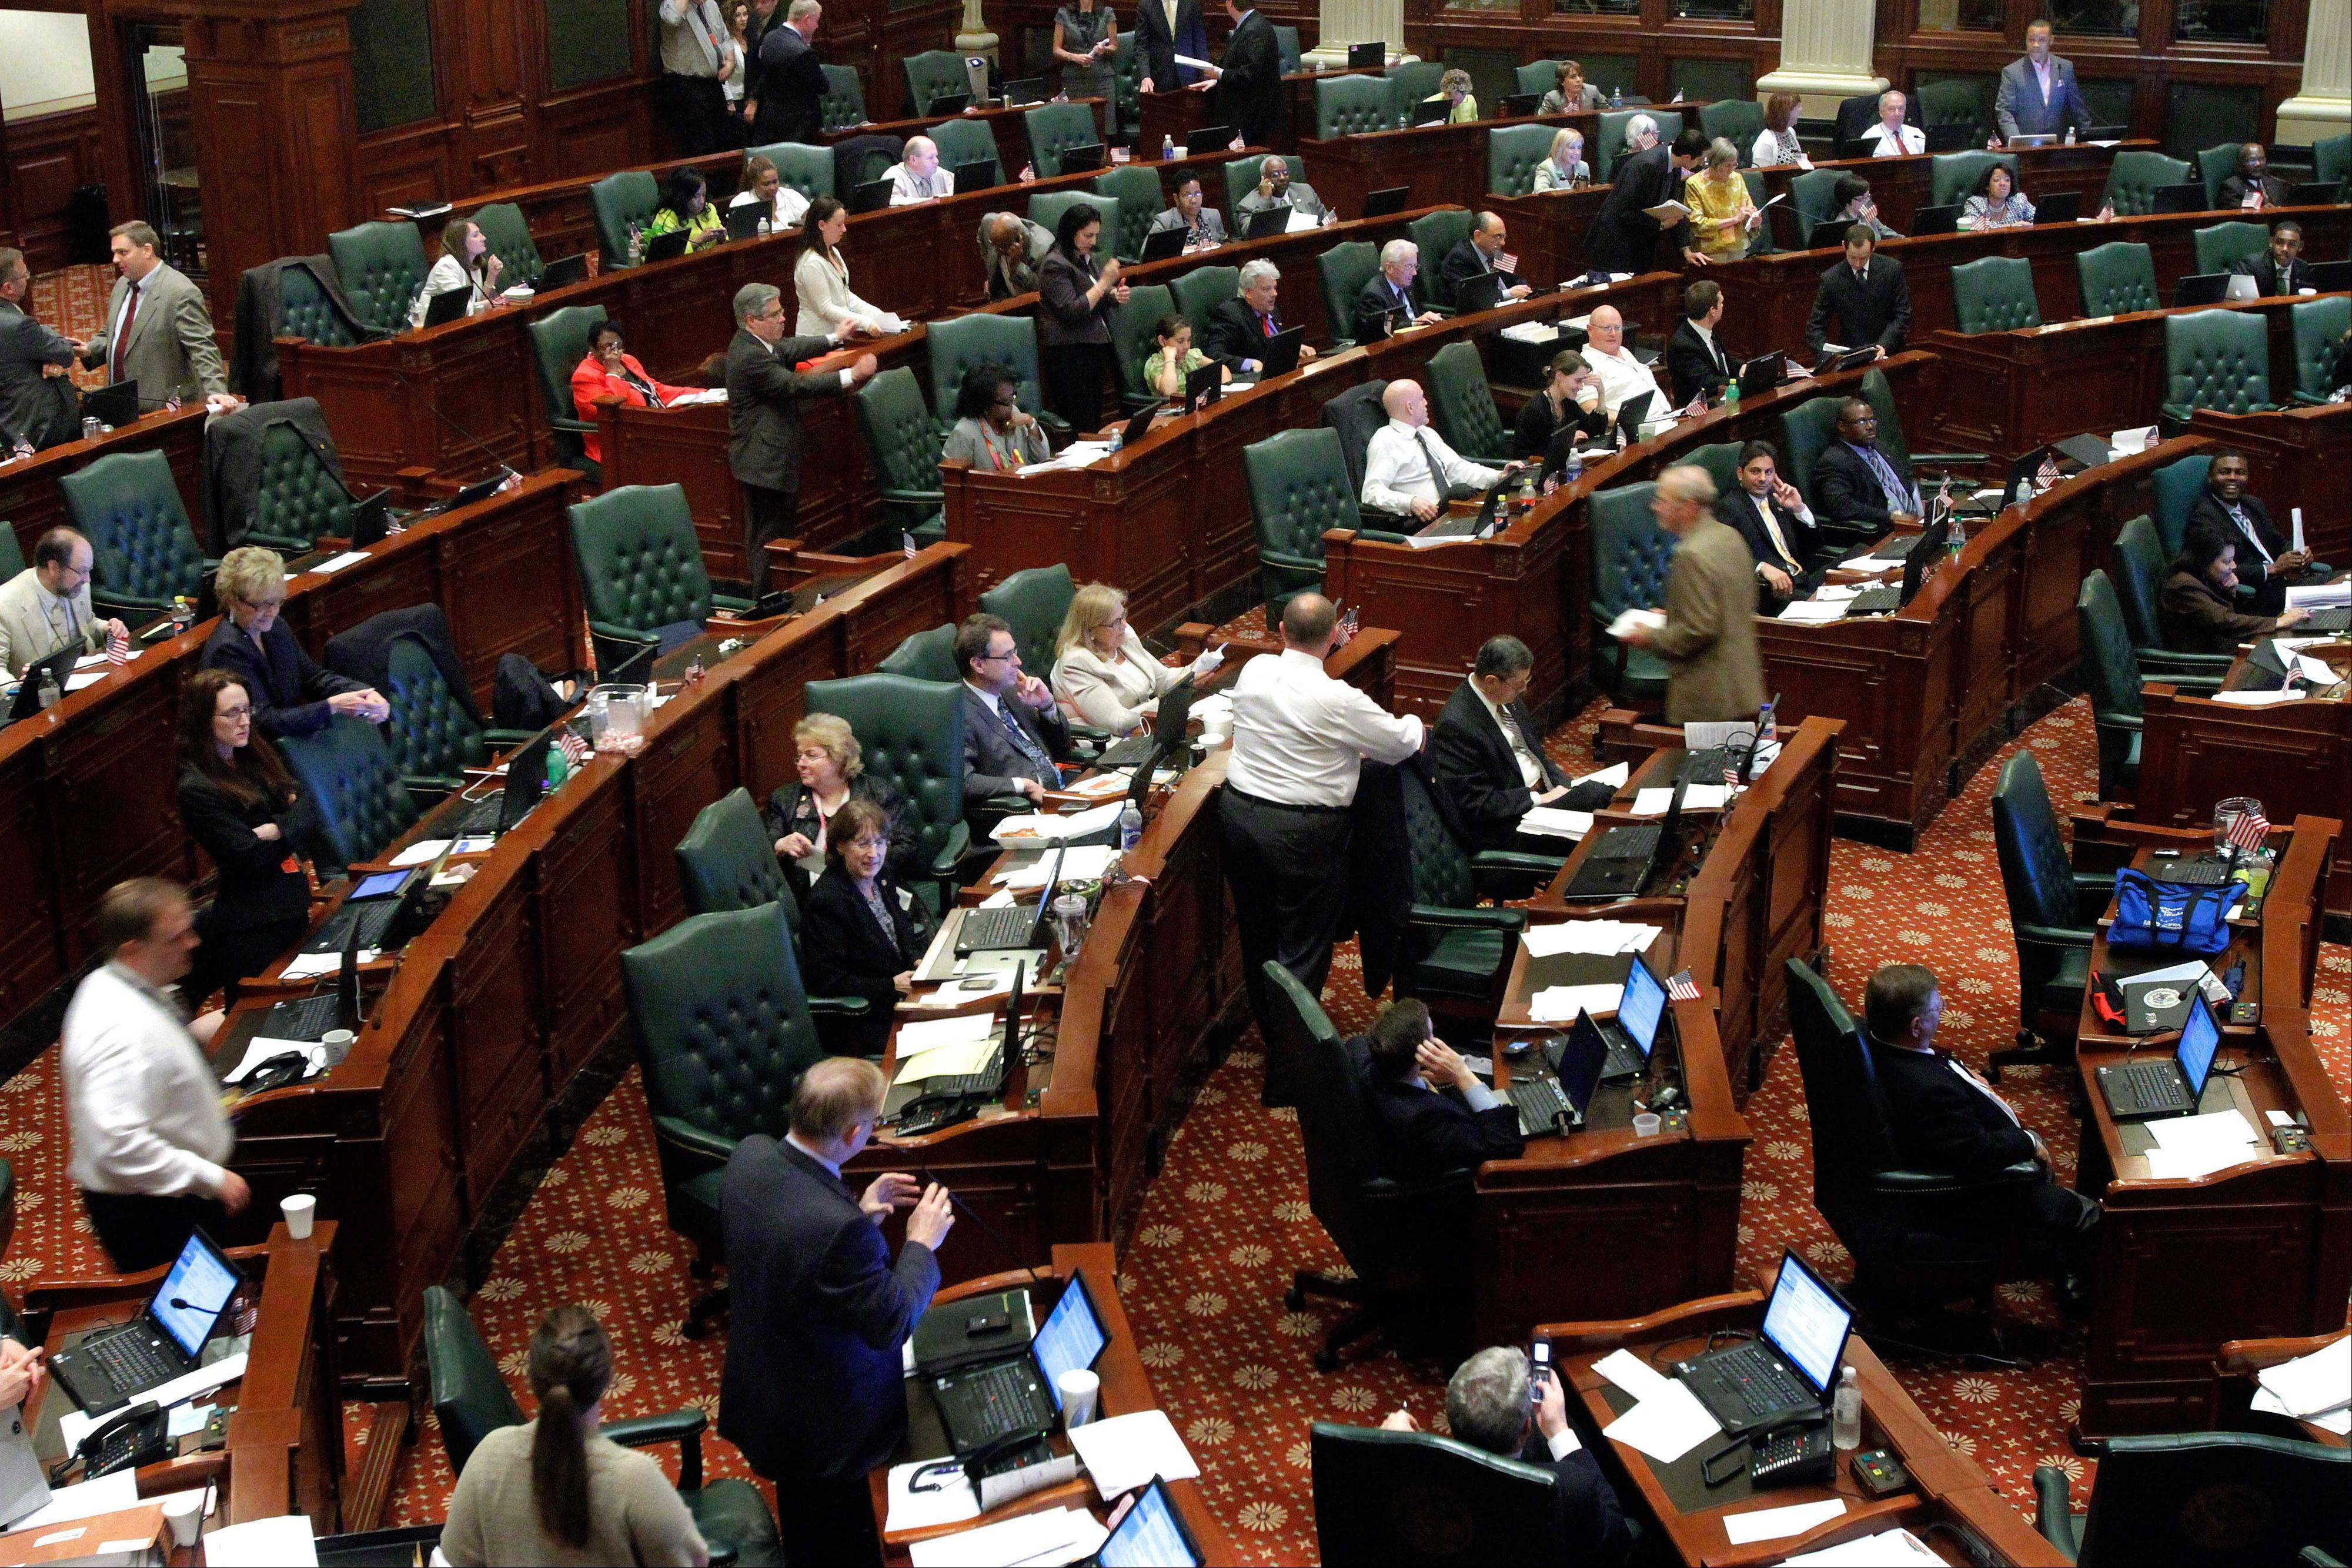 Less than 2 percent of the new laws passed last year by the Illinois General Assembly included financial reports, called fiscal notes, which indicate to legislators the cost or savings of the bill.